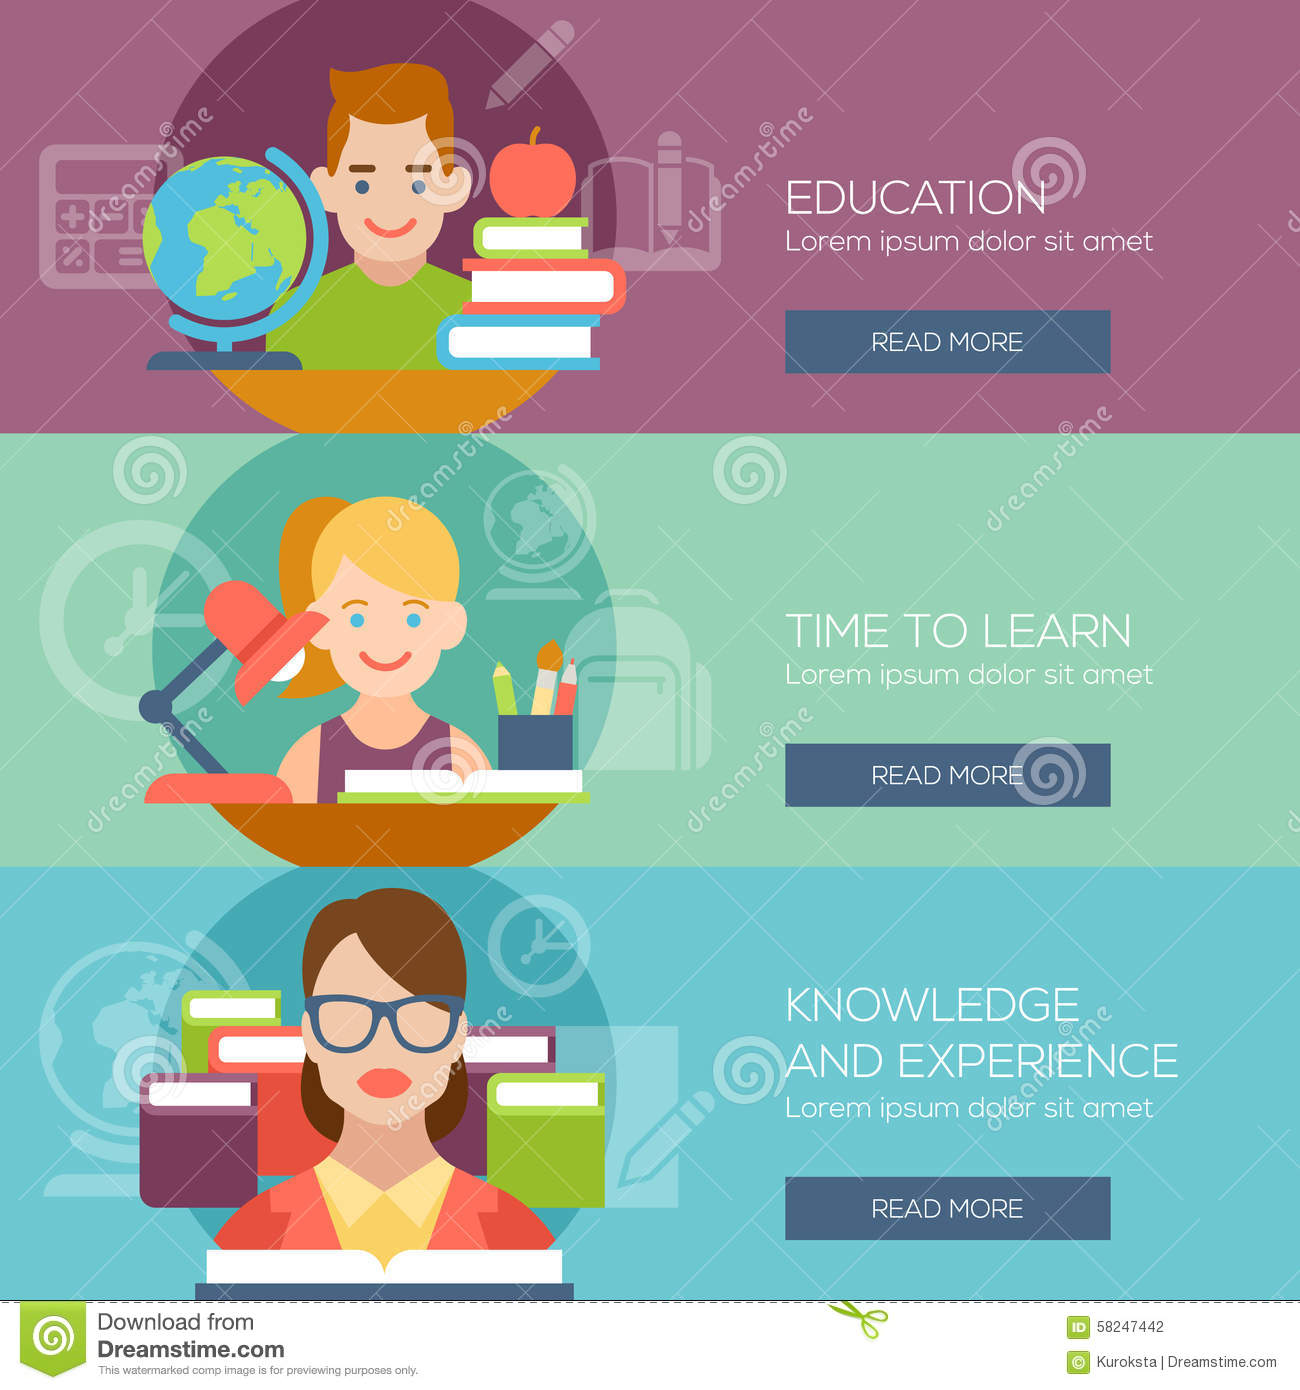 Book Icon Vector Male Student Or Teacher Person Profile: Flat Education Student Pupil Kid Teacher People Stock